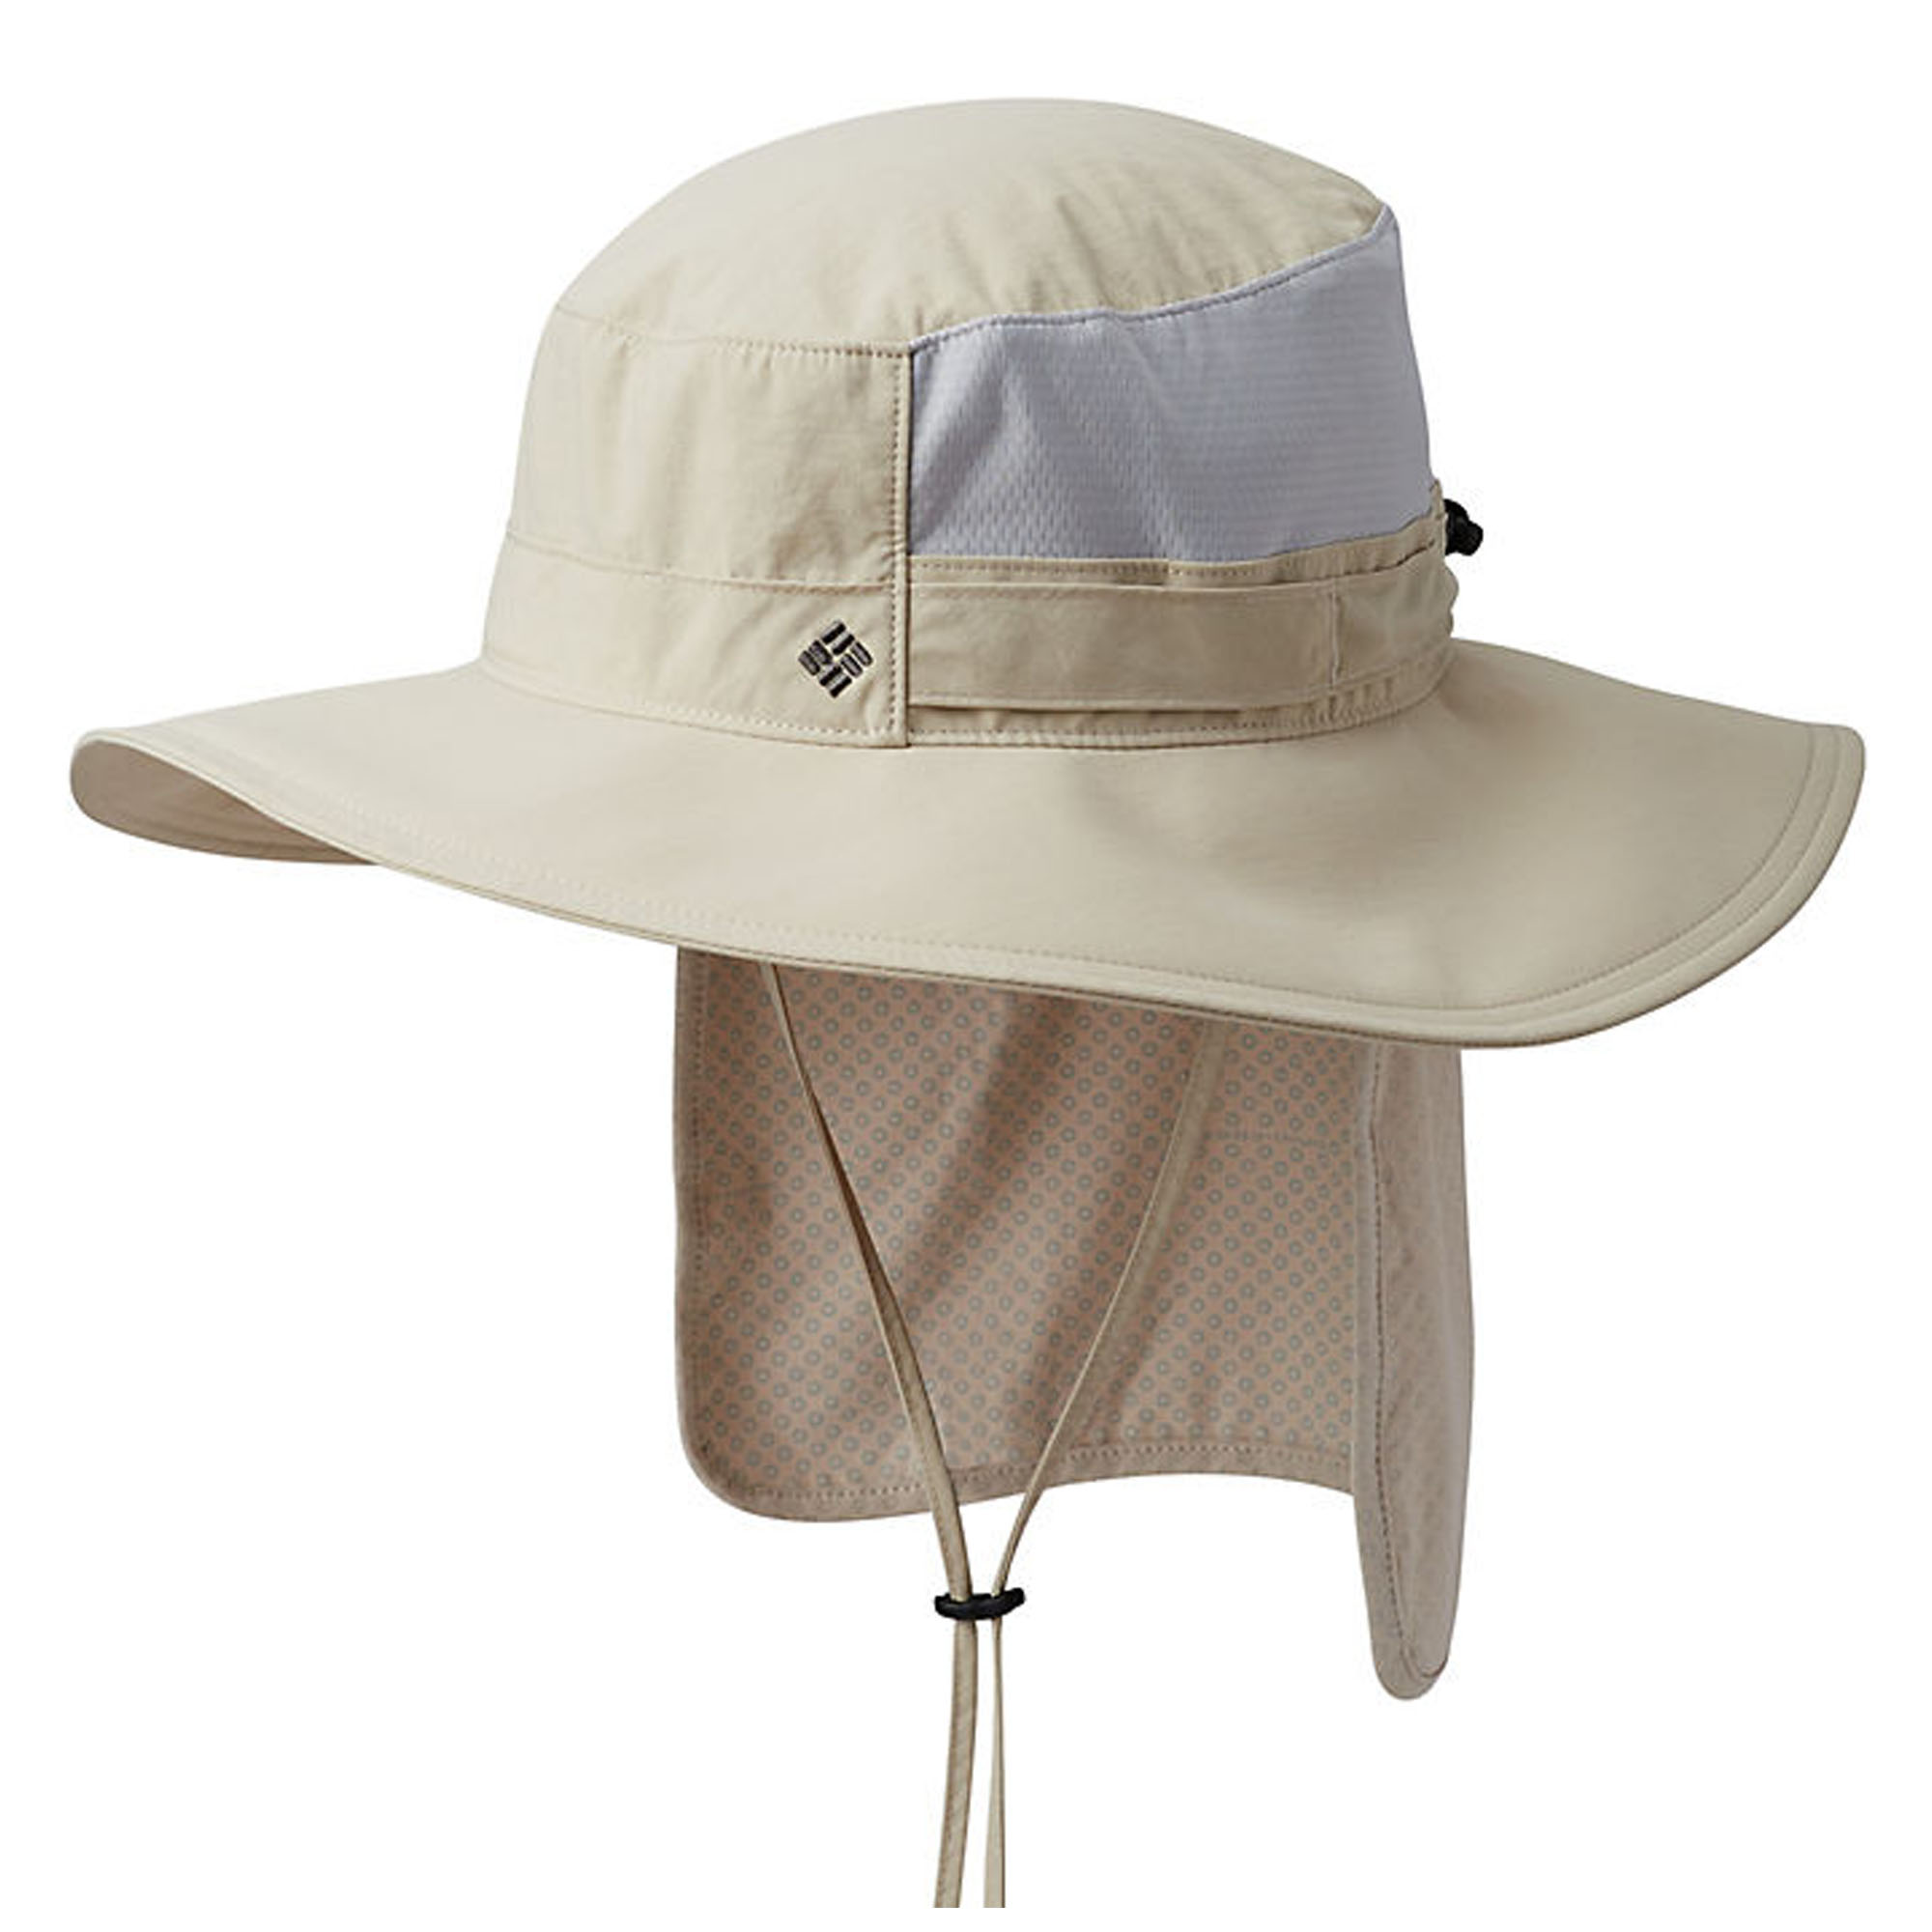 e2f882cb0ad97 Columbia Men s Coolhead Ii Zero Booney Hat - Sun   Ski Sports